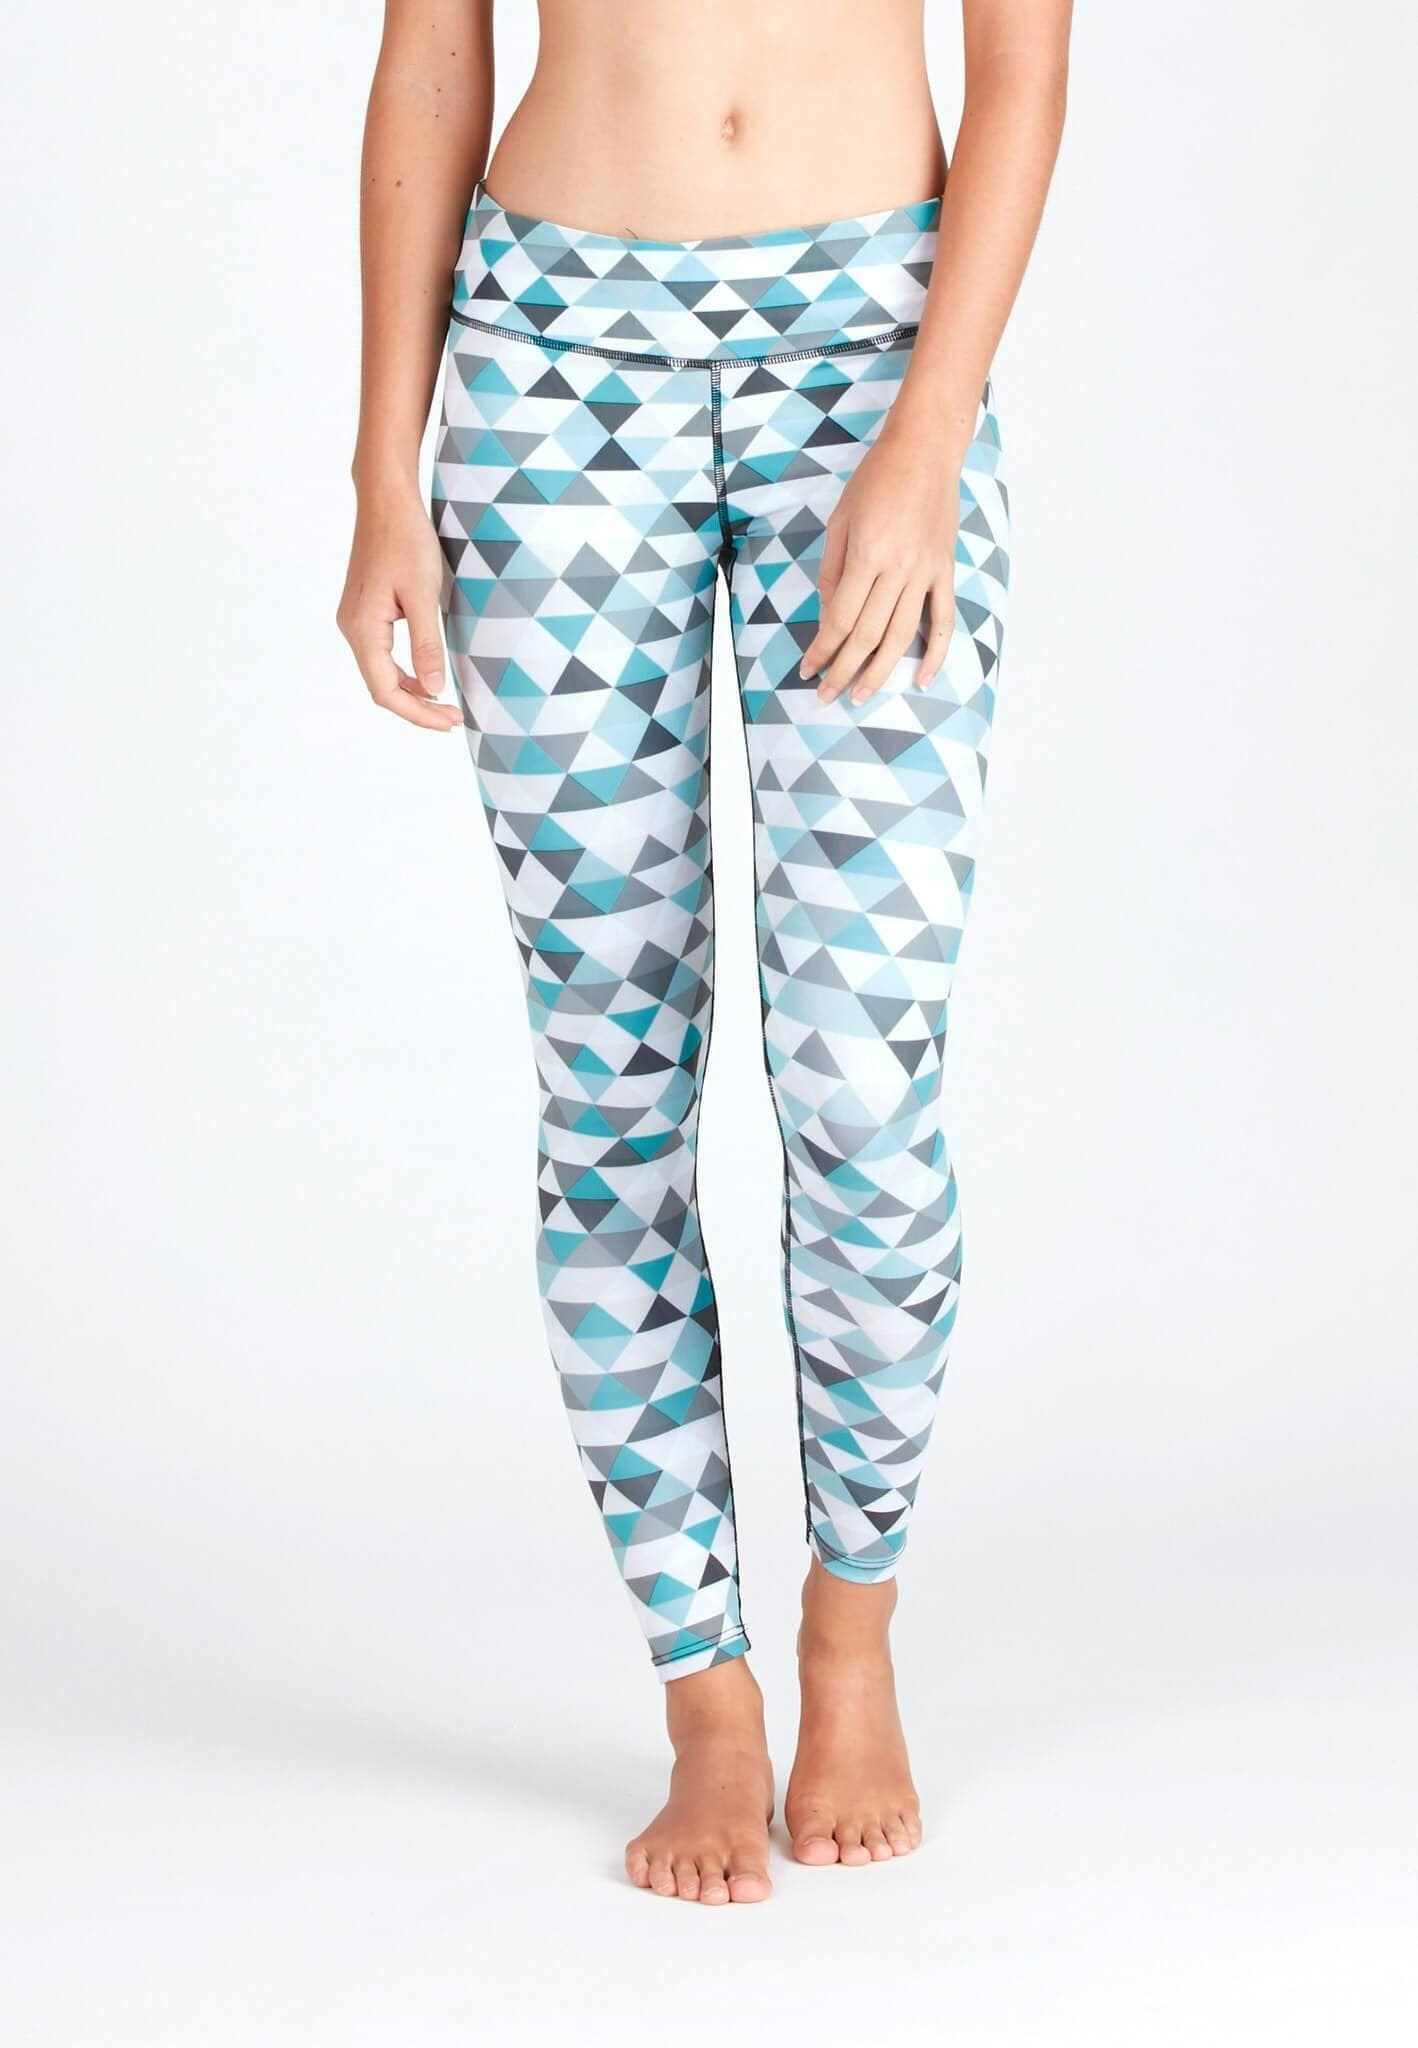 FUNFIT Movement Leggings in Prism Print (S - XL)